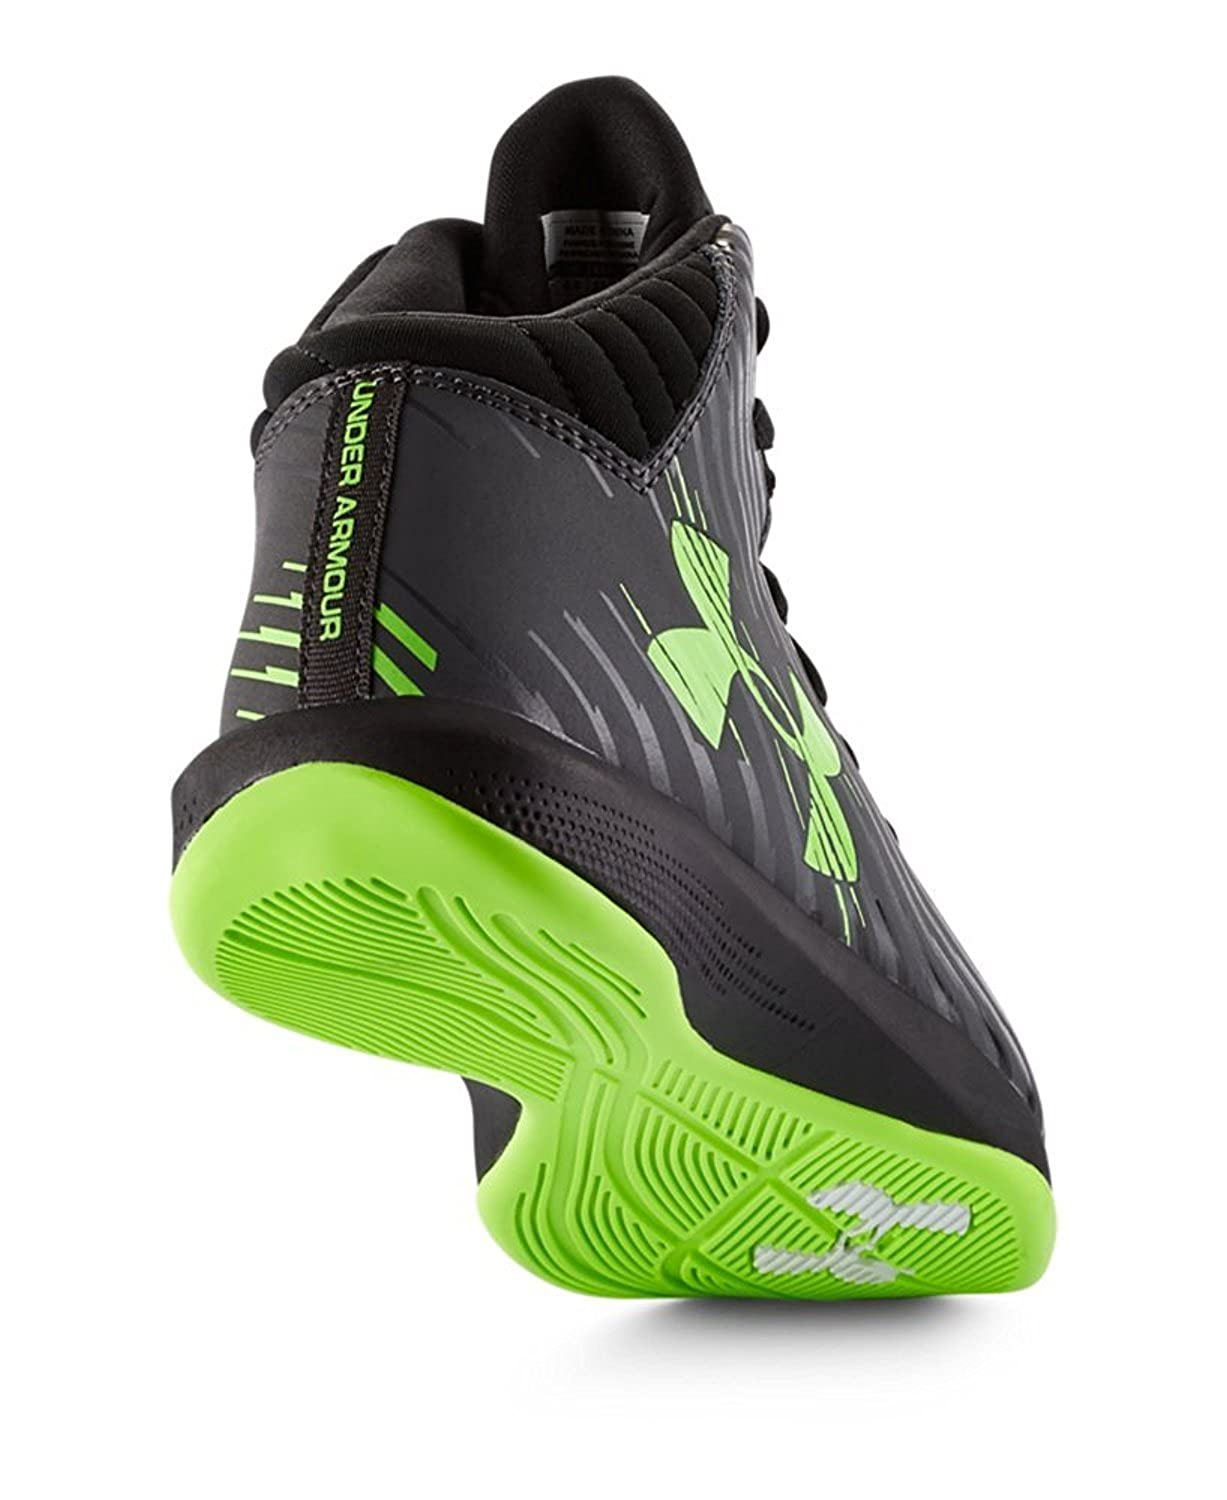 Amazon.com | Under Armour Kids Jet Basketball Shoes Hyper Green Size 5 M US | Basketball